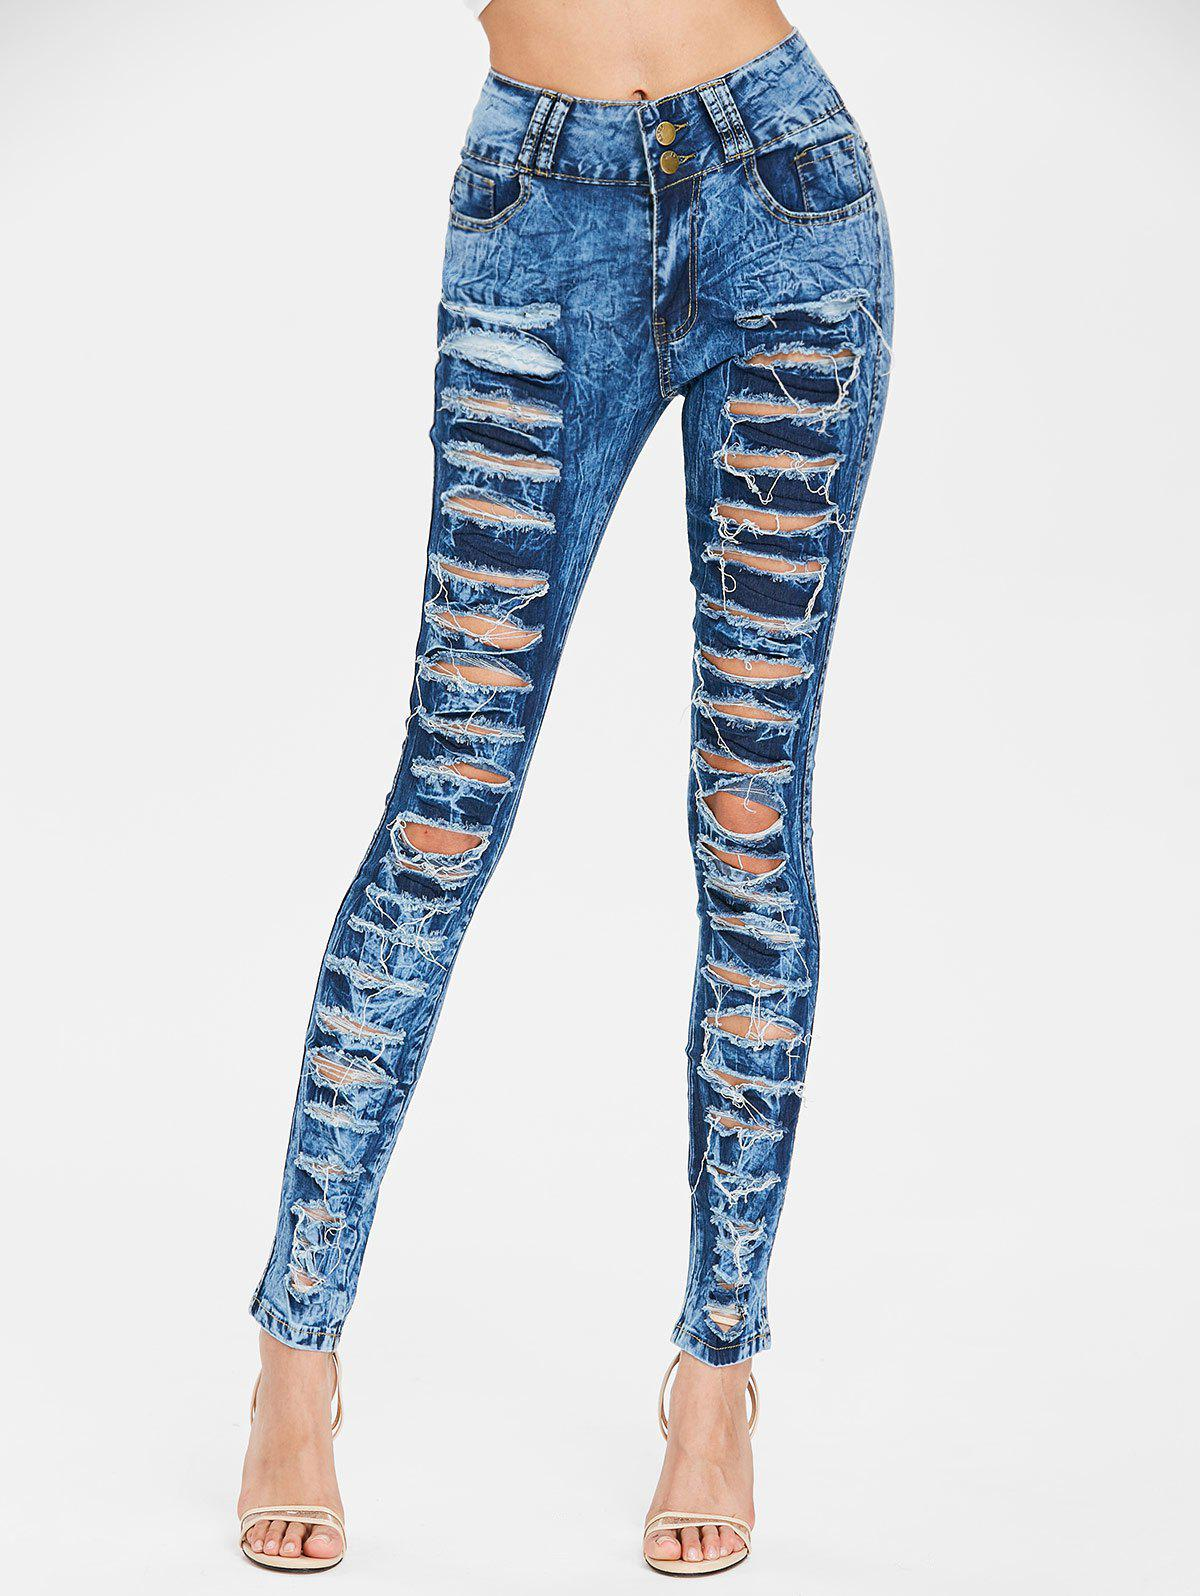 Shop Frayed Skinny Ripped Jeans